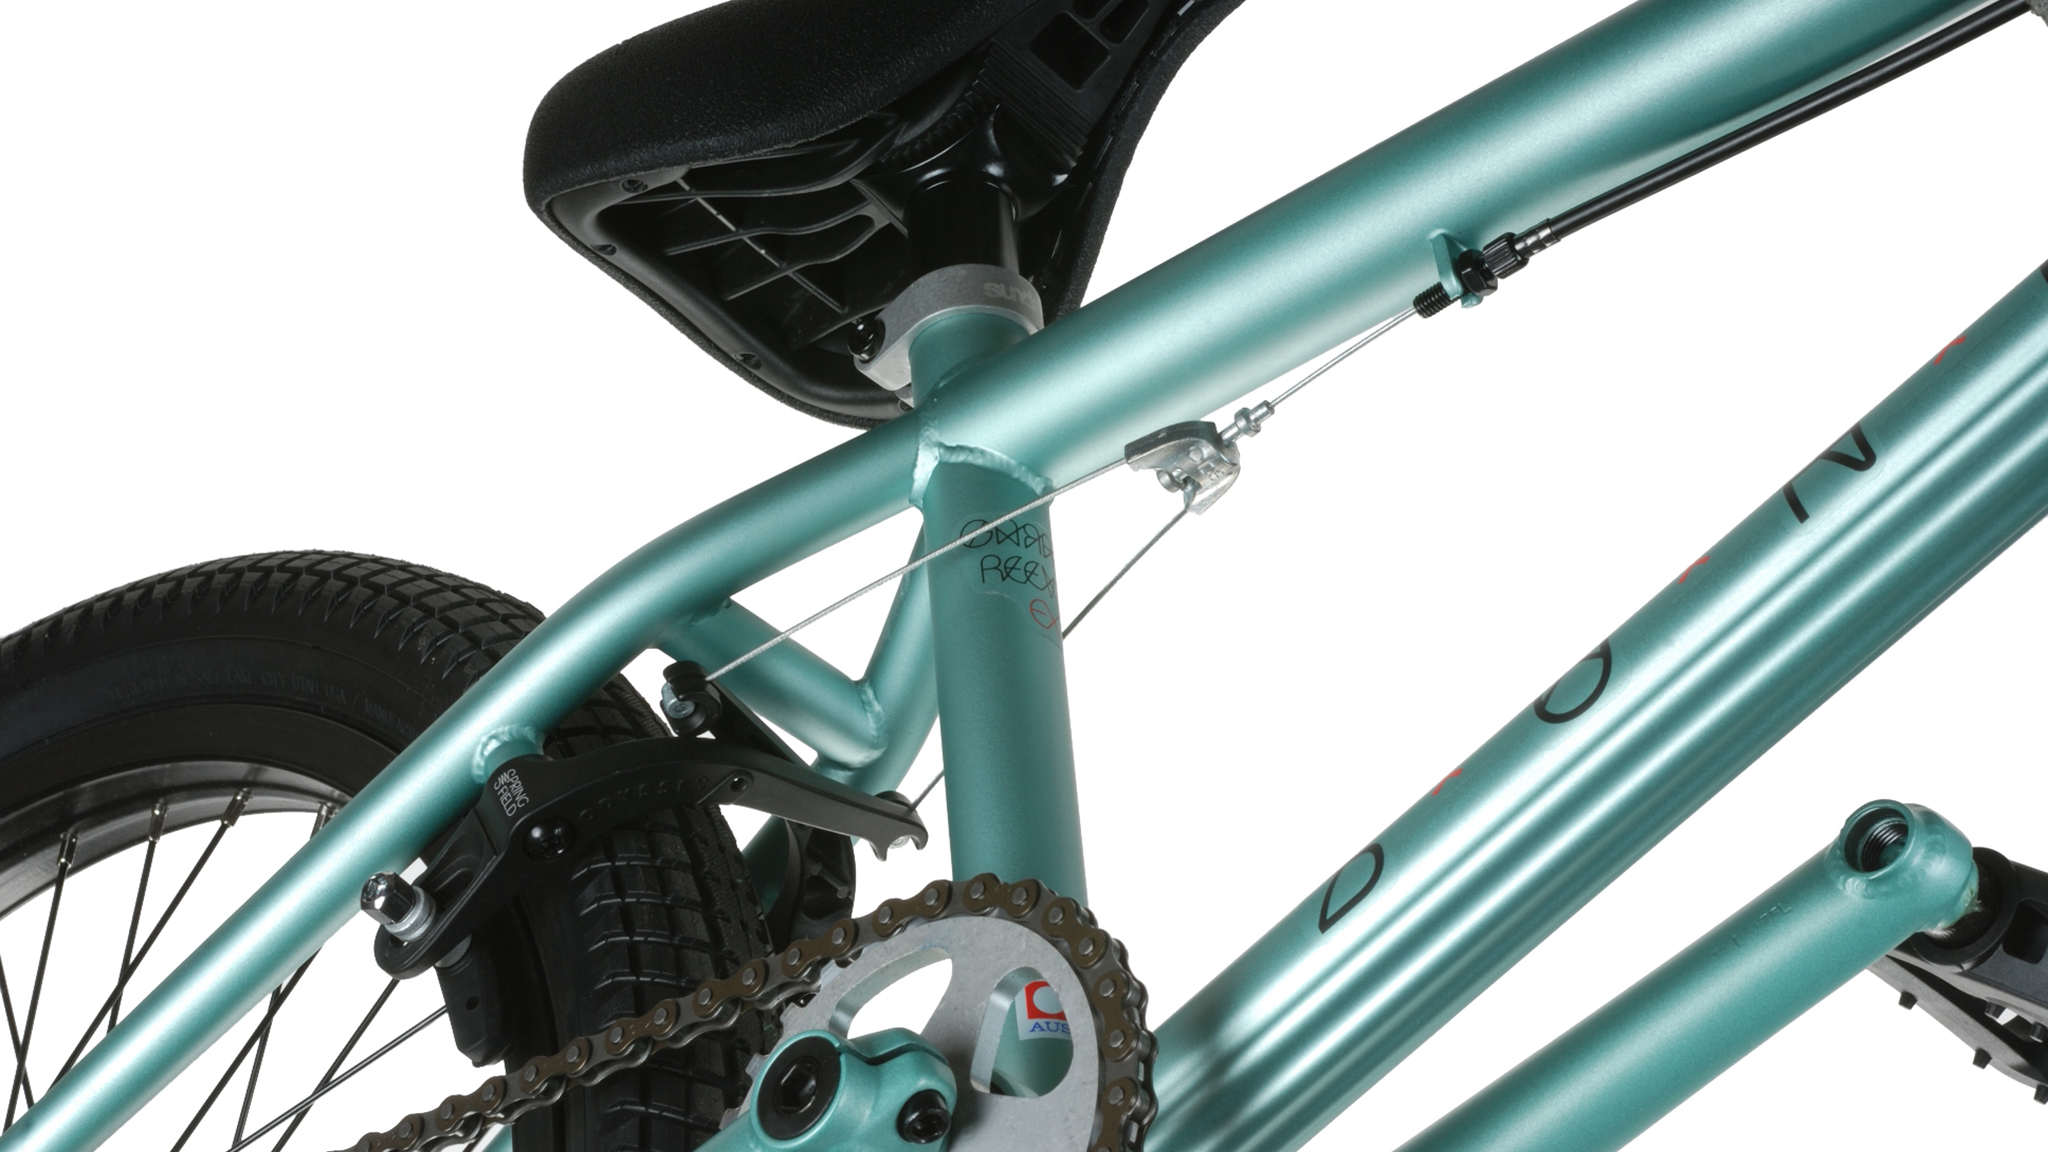 Odyssey BMX's new Adjustable Linear Quik Slic Kable eliminates the need for tools during installation.